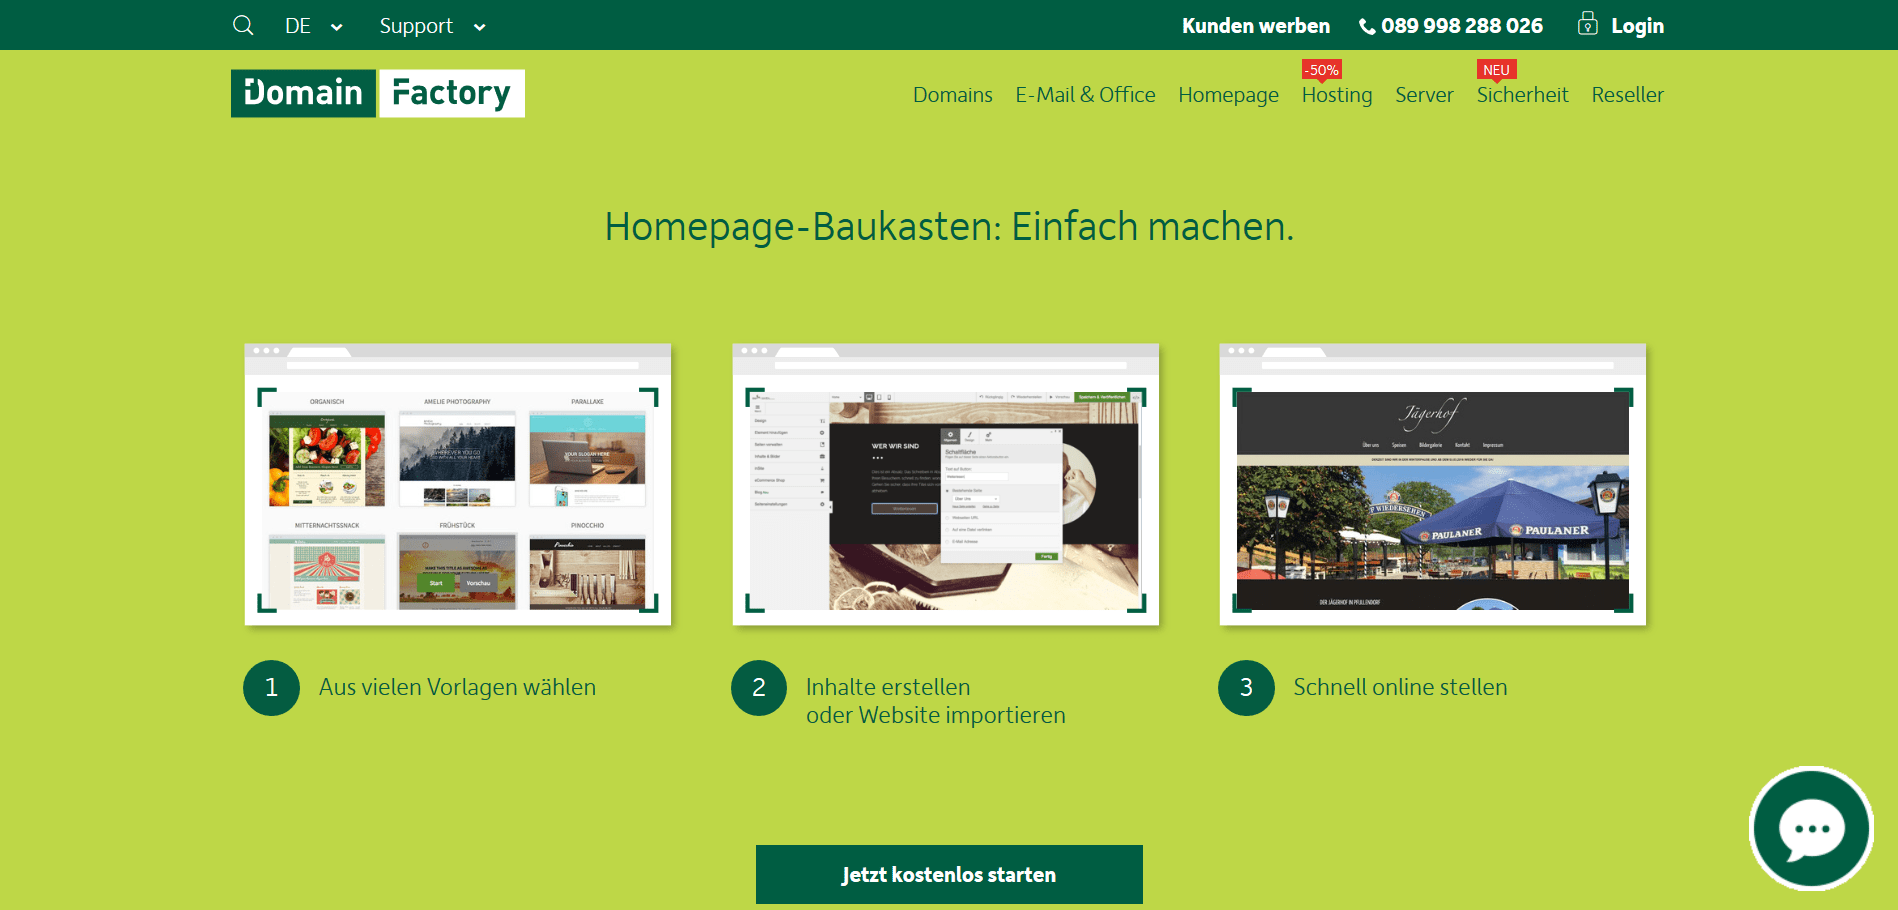 Homepage Baukasten Test: Domain Factory